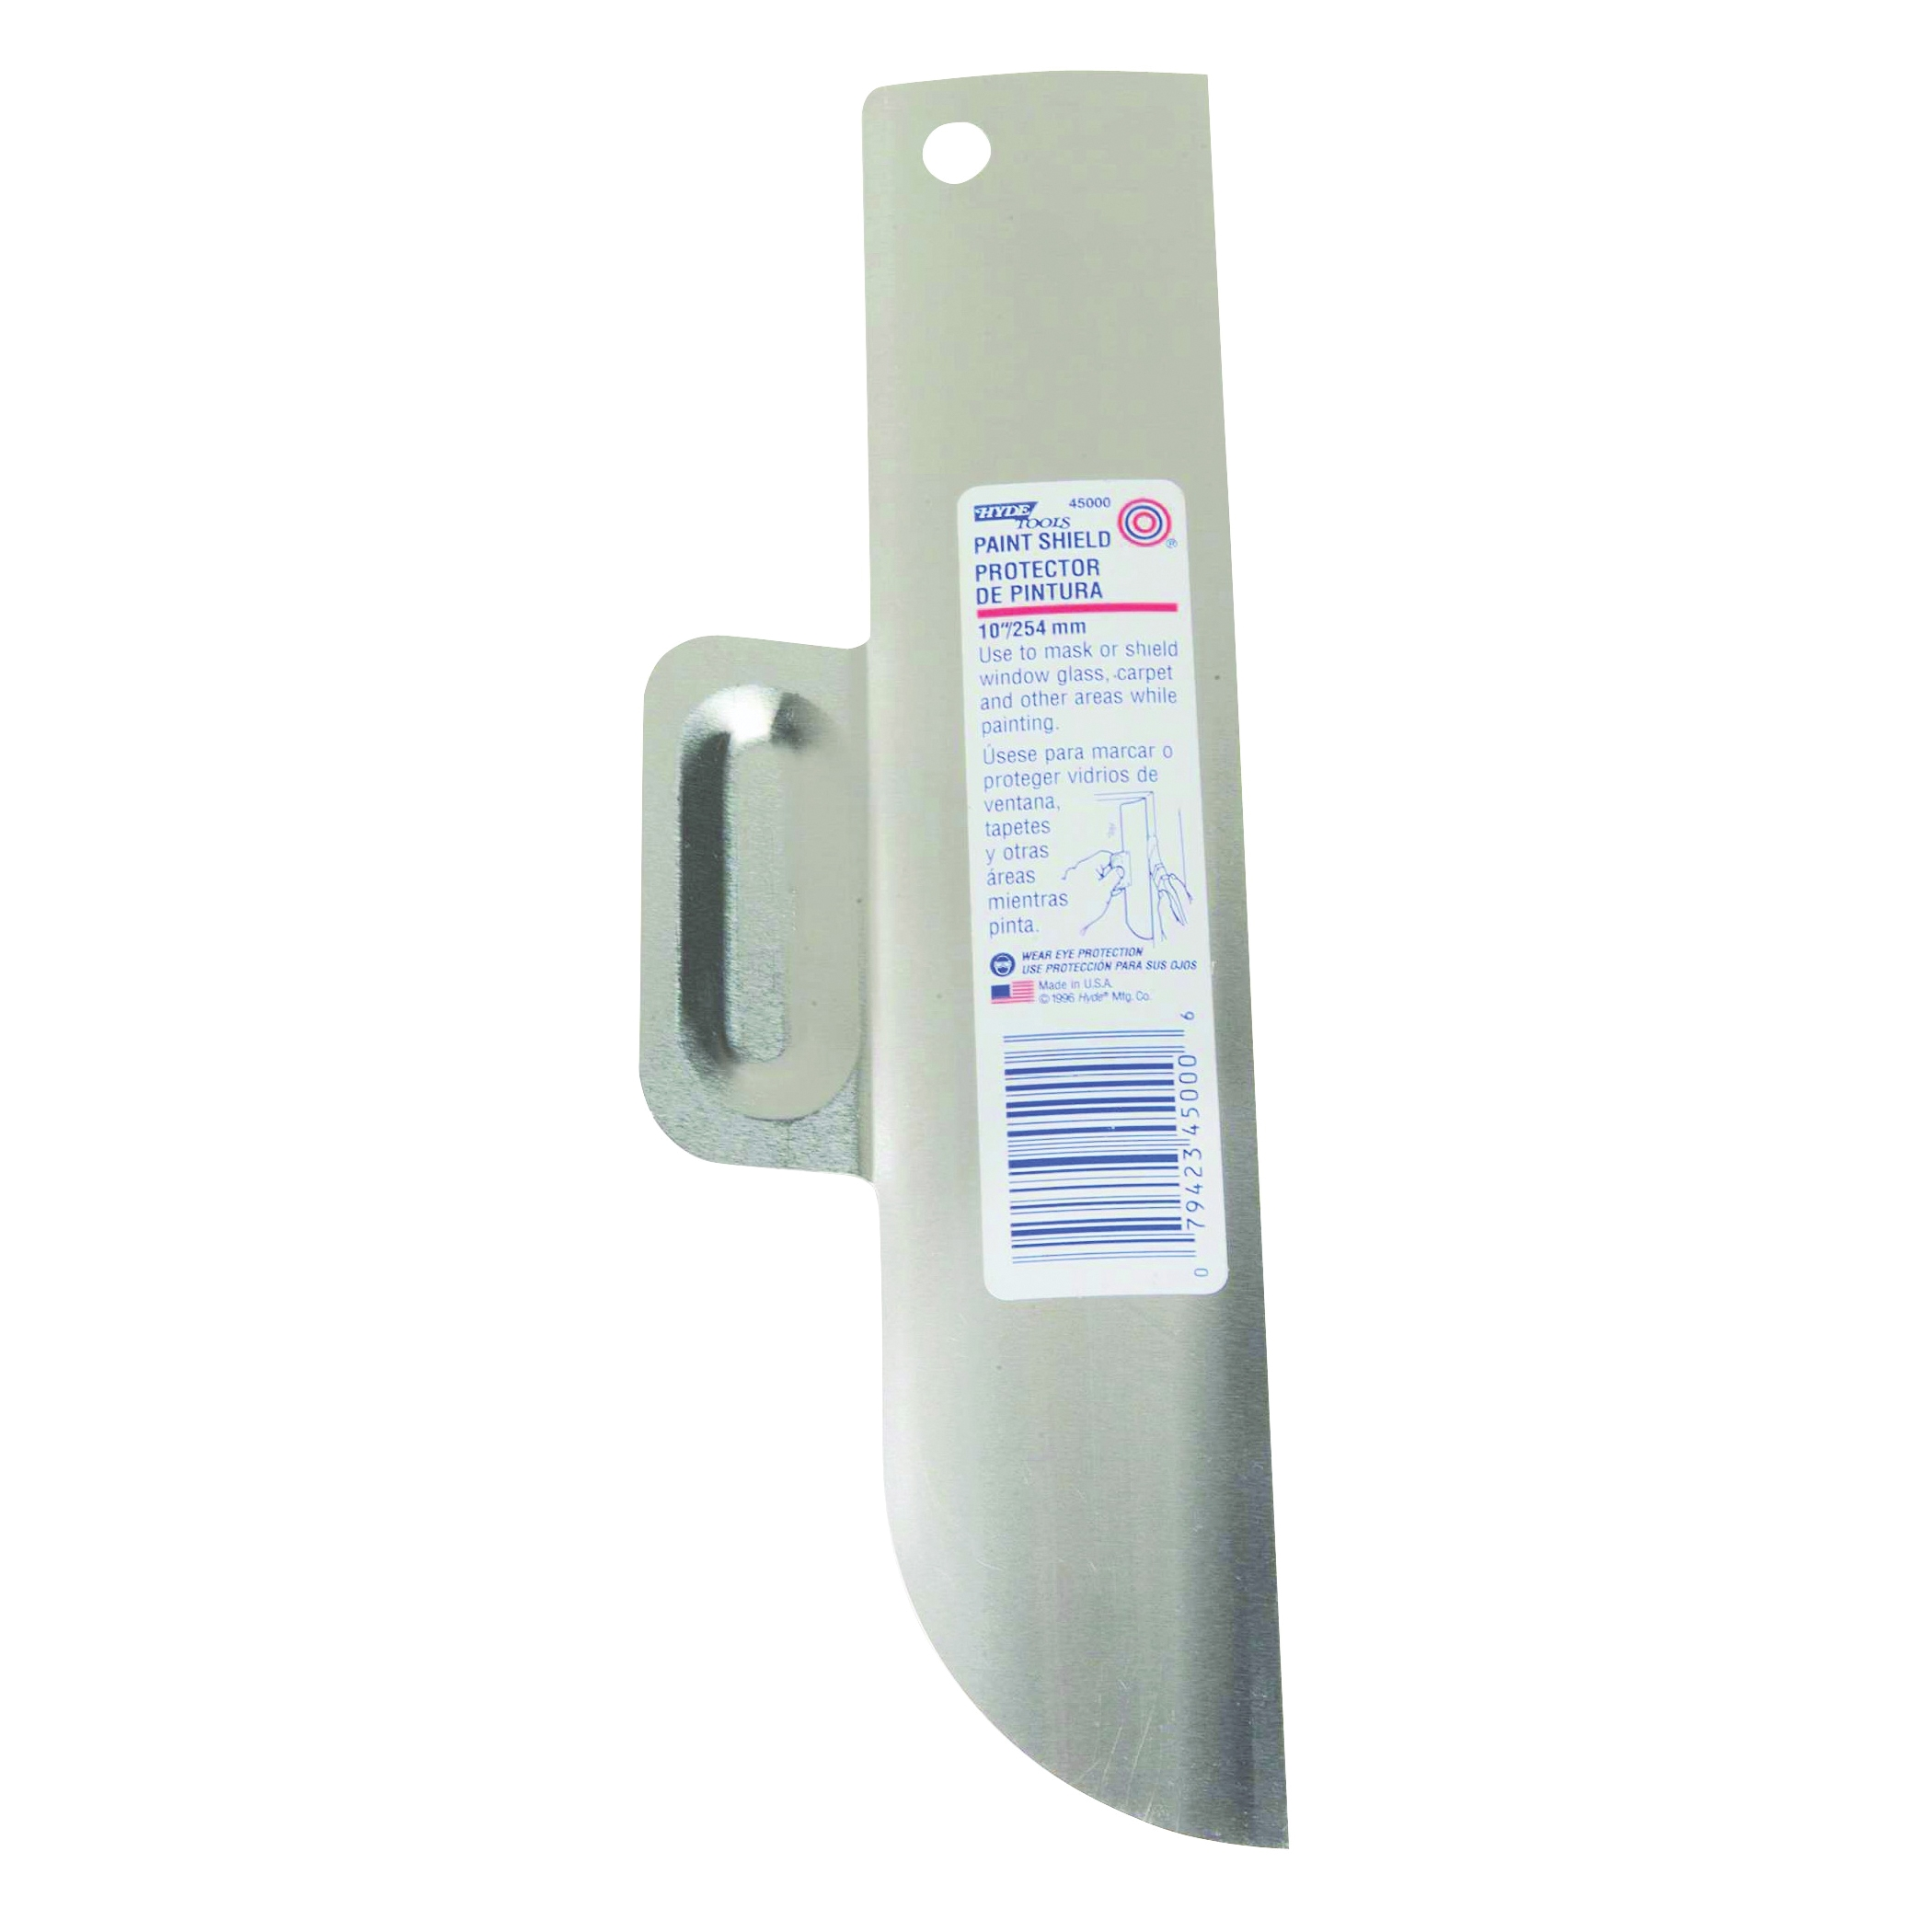 Picture of HYDE 45000 Paint Shield, 10 in Blade, Offset Handle